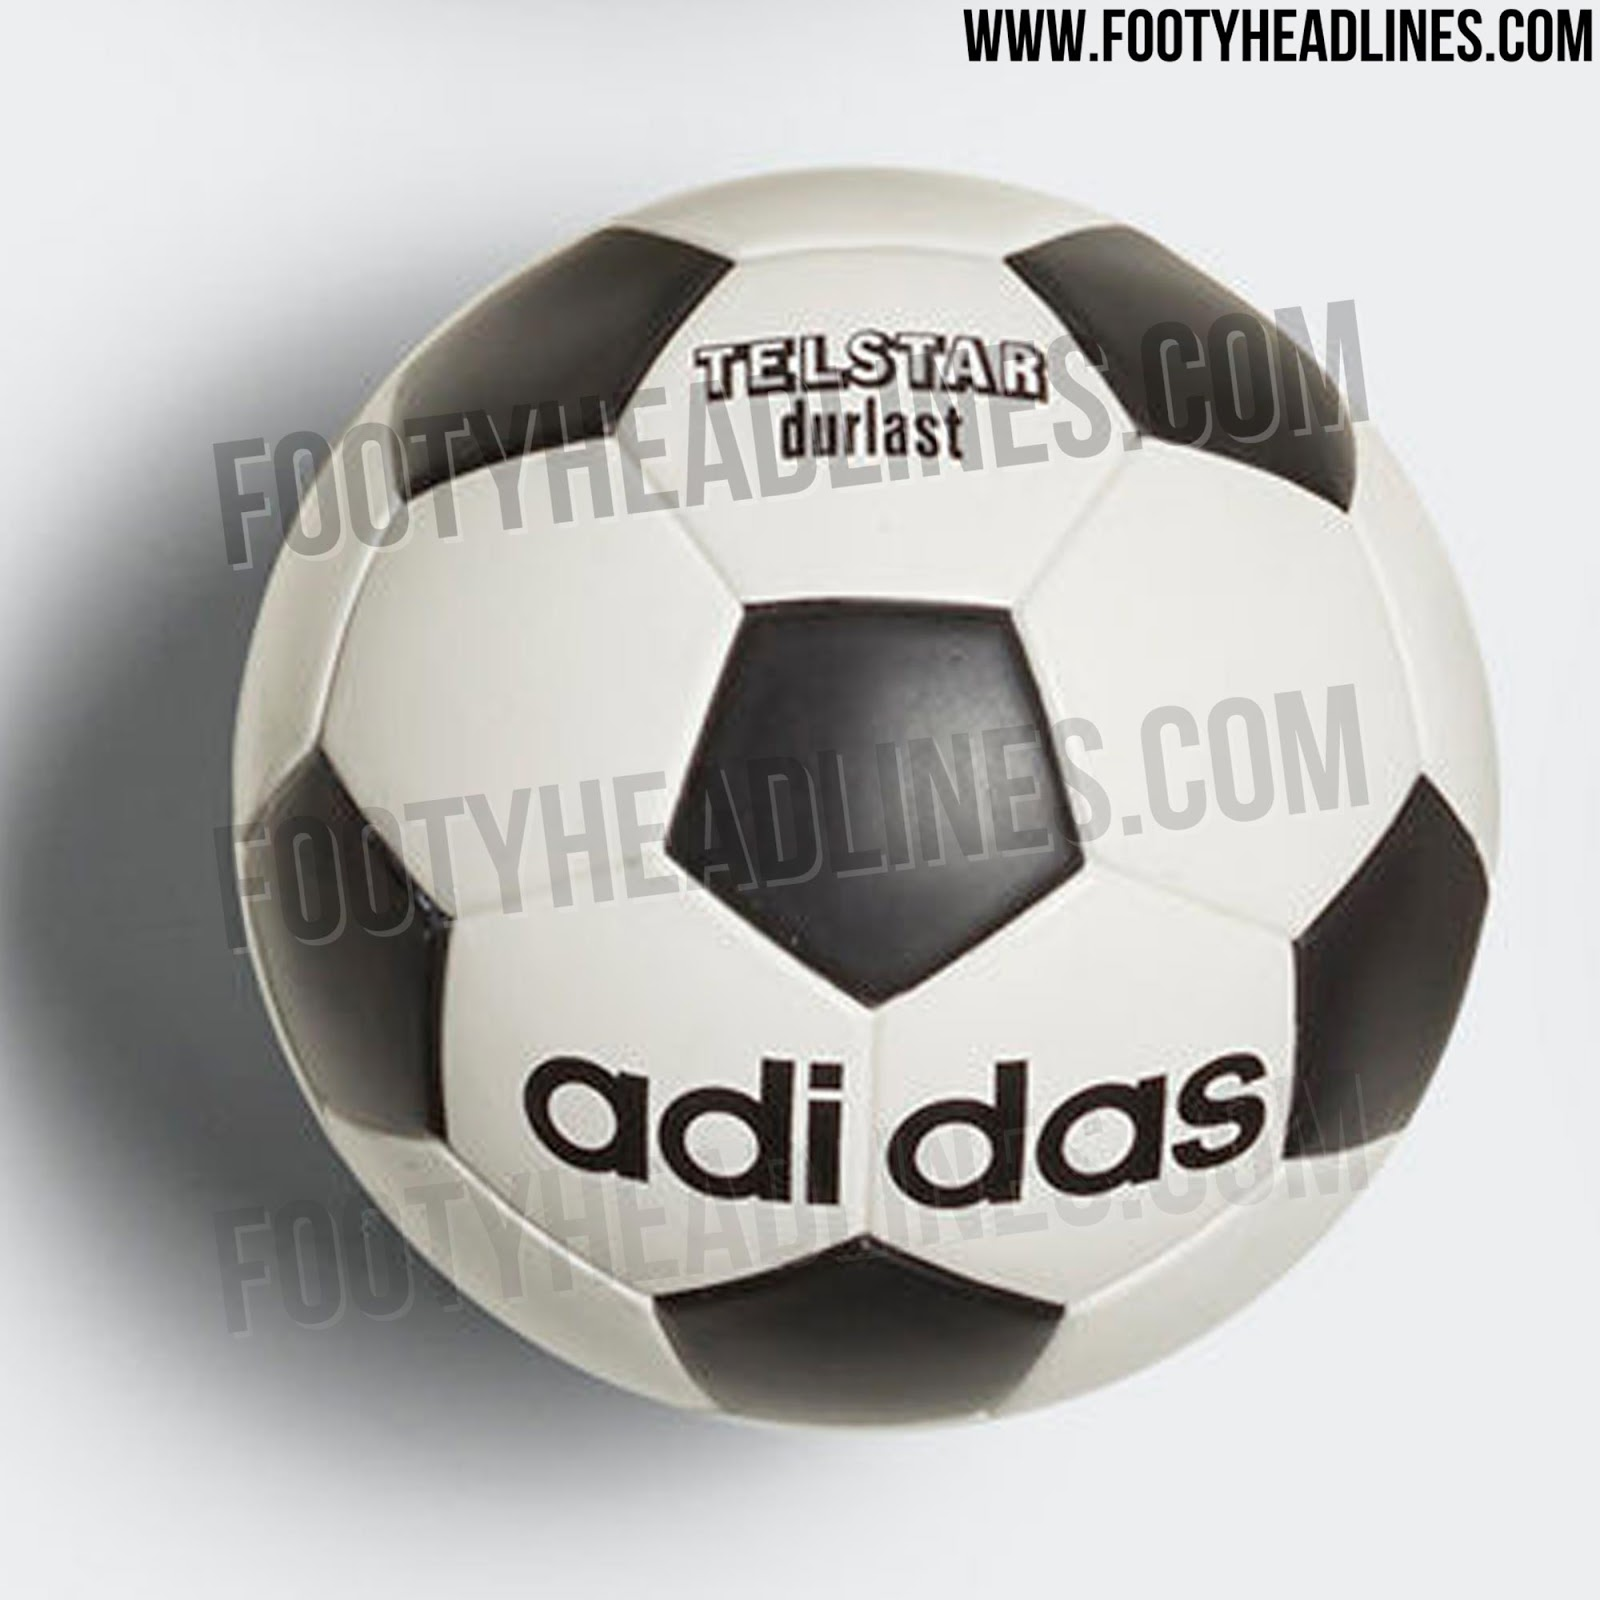 low priced 22389 a8fa5 ... The Adidas Historical FIFA World Cup Mini Ball Set will retail at a  price of around ...